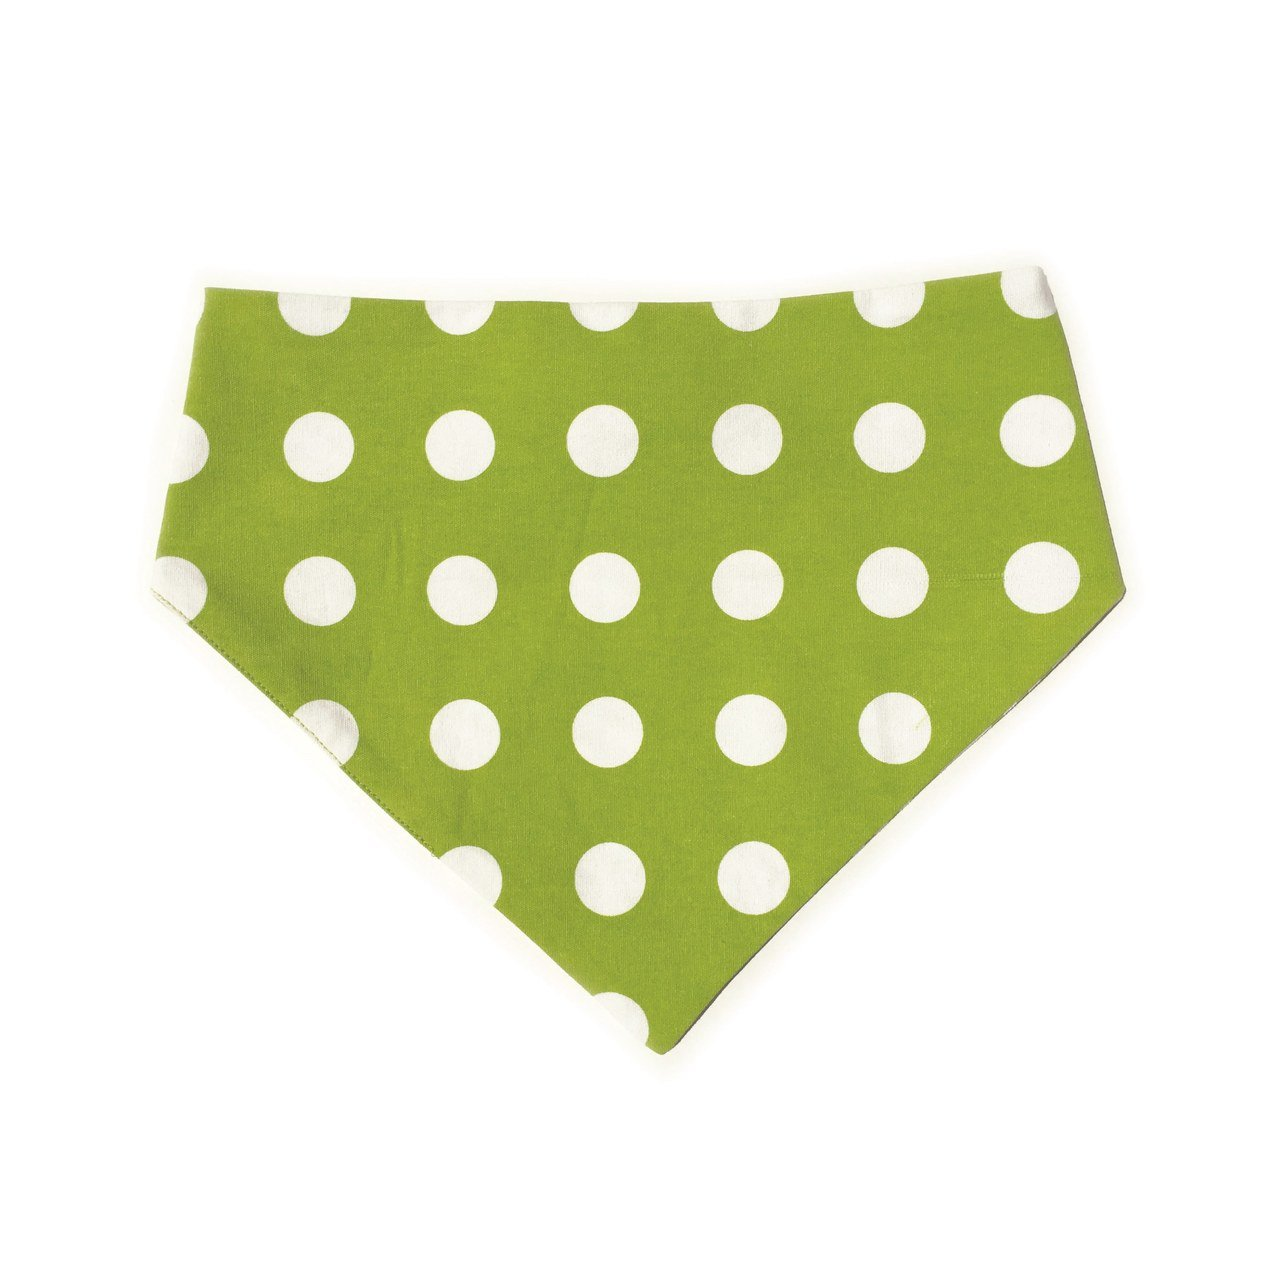 Uptown Pups Reversible Bandana - Lime Green Chevron - Uptown Pups